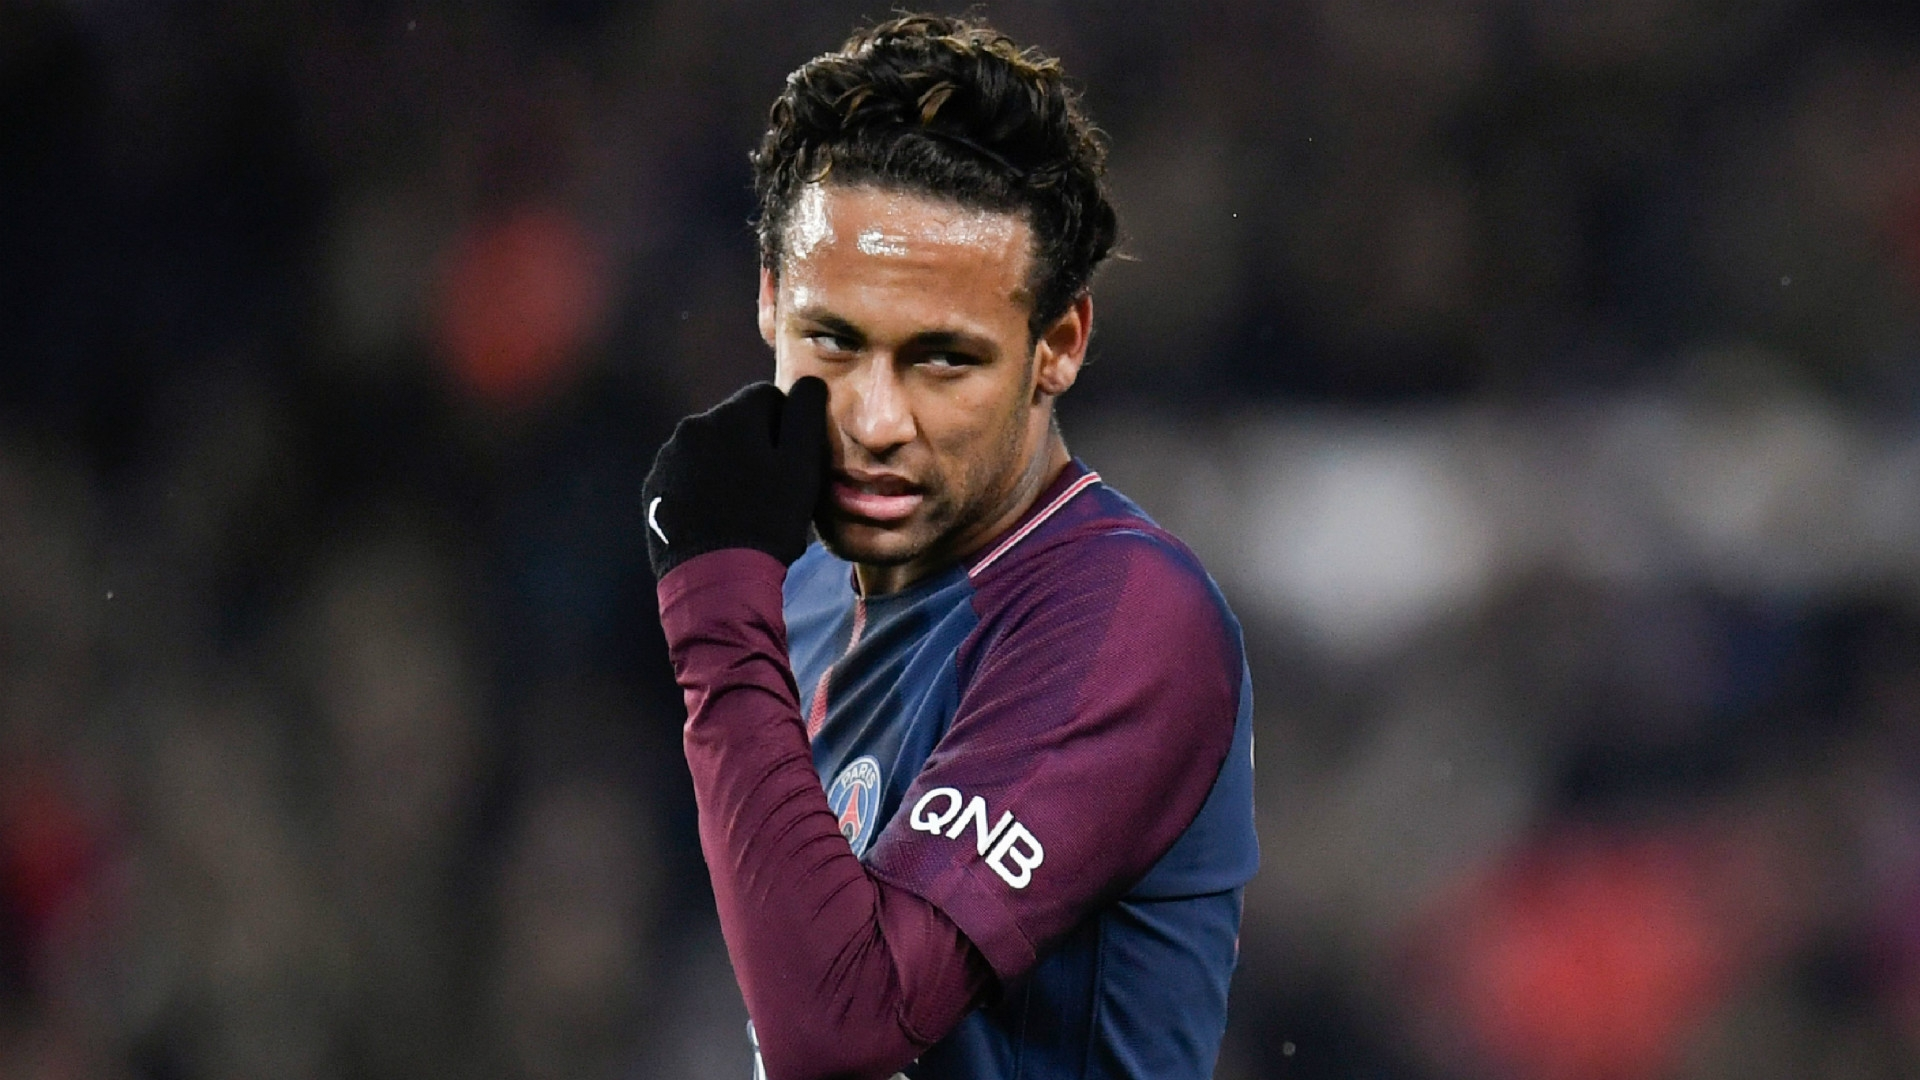 Neymar Involved In Six Goals For PSG But Fans Still Boo